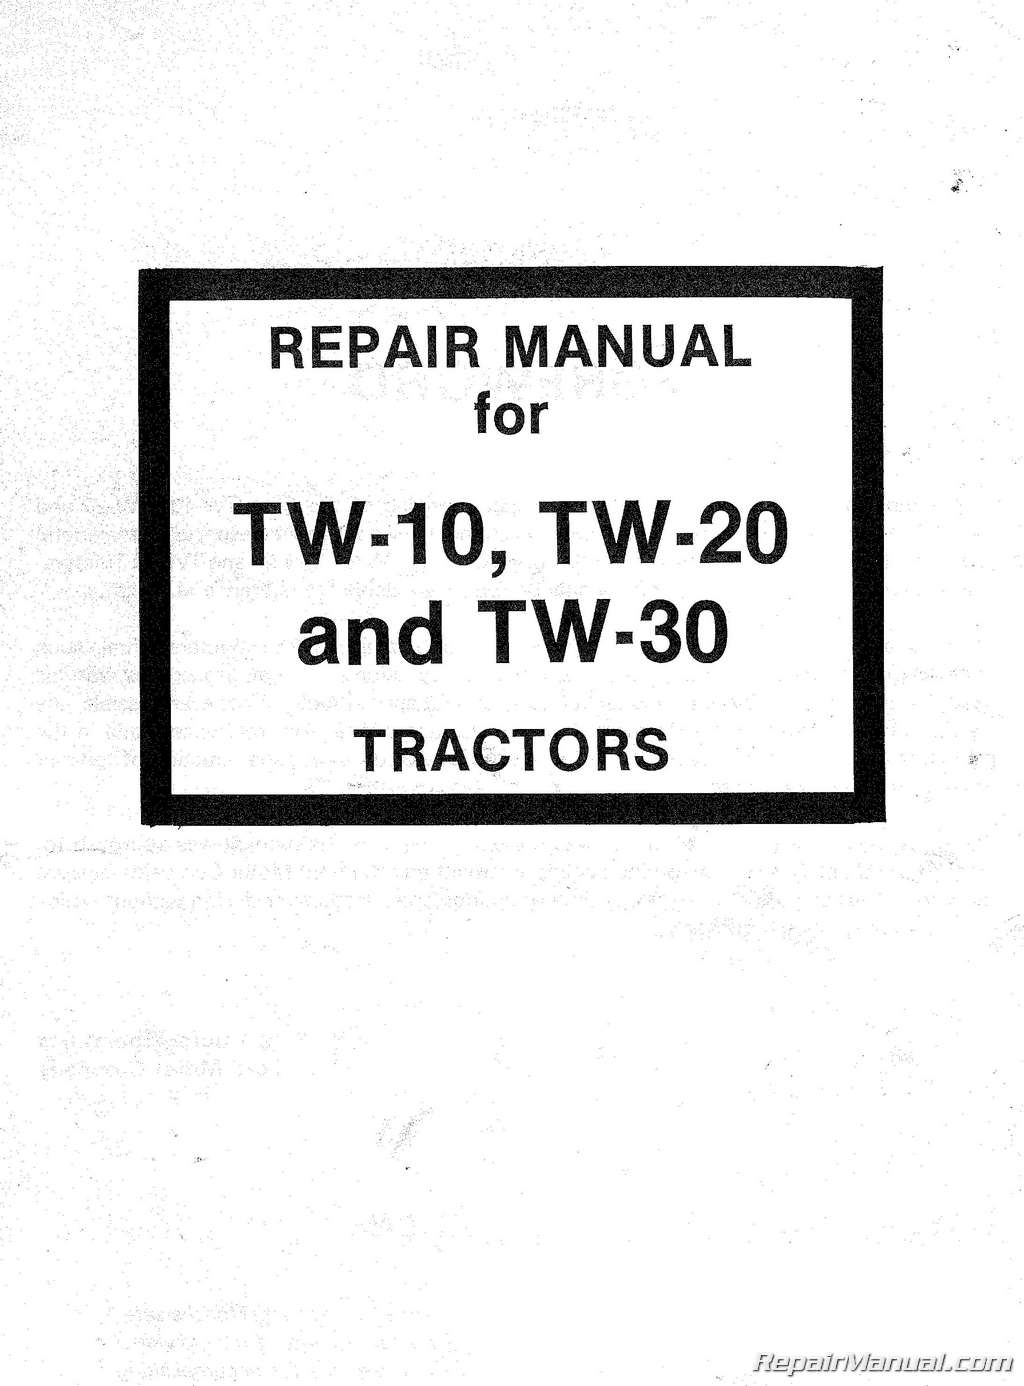 Ford Tw 10 20 30 Tractor Service Repair Manual 5 4 Instrument Lights Wiring